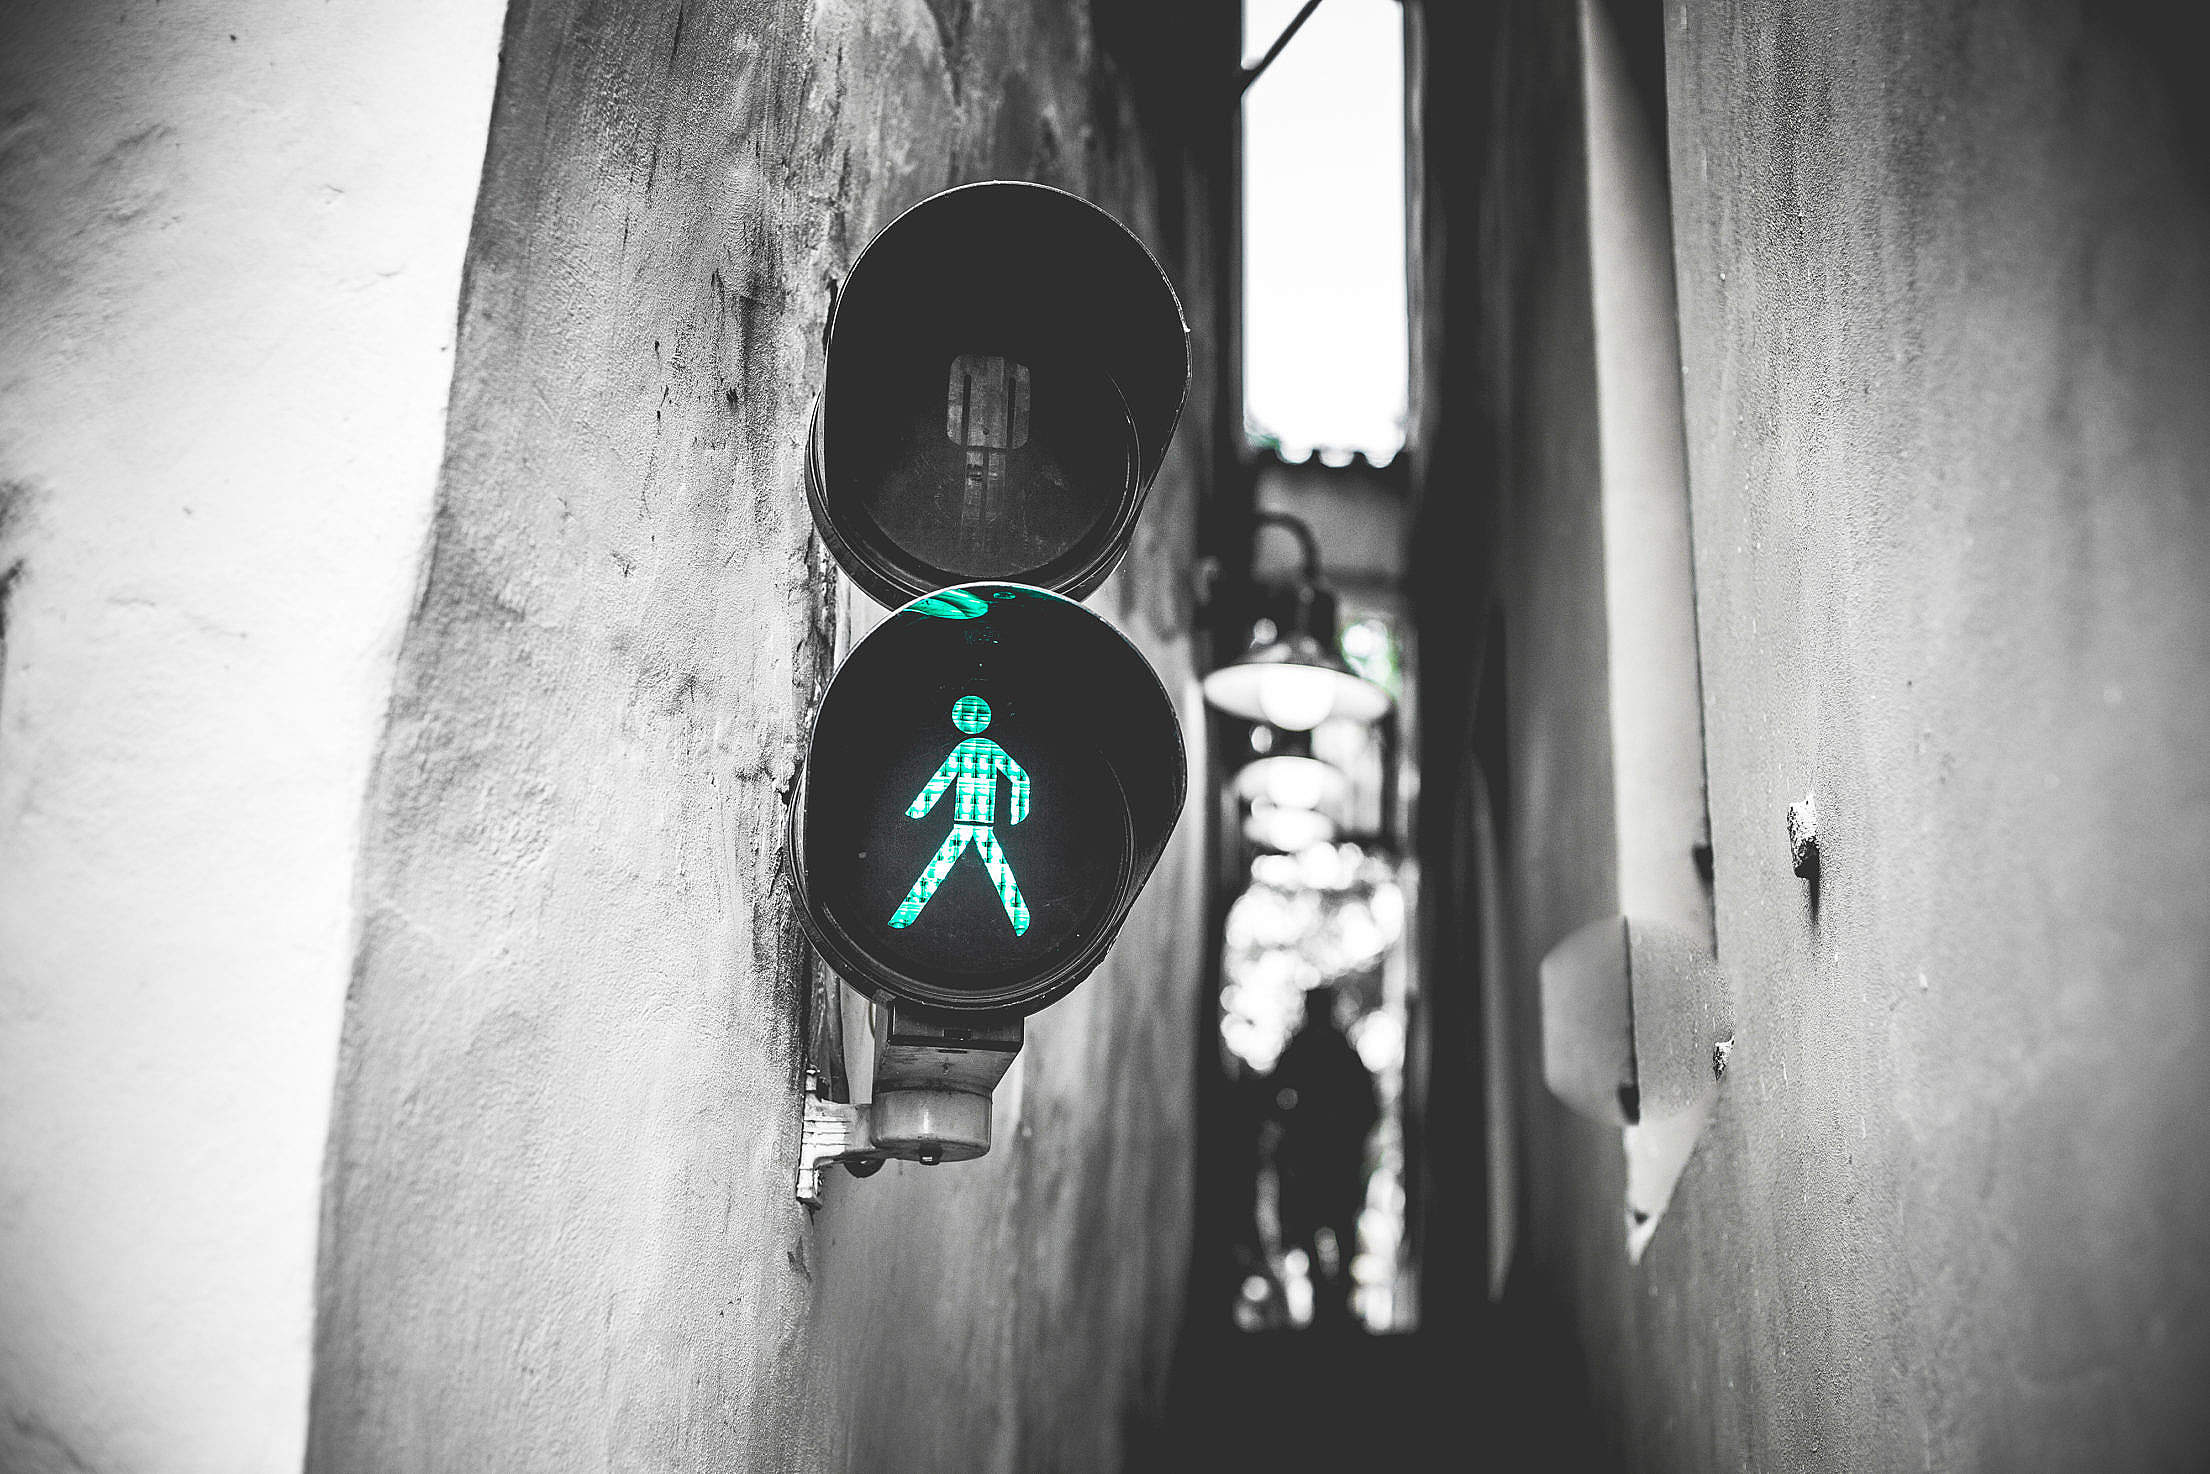 (click to download) Green Traffic Light Walk Signal in Prague Narrowest Street FREE Stock Photo